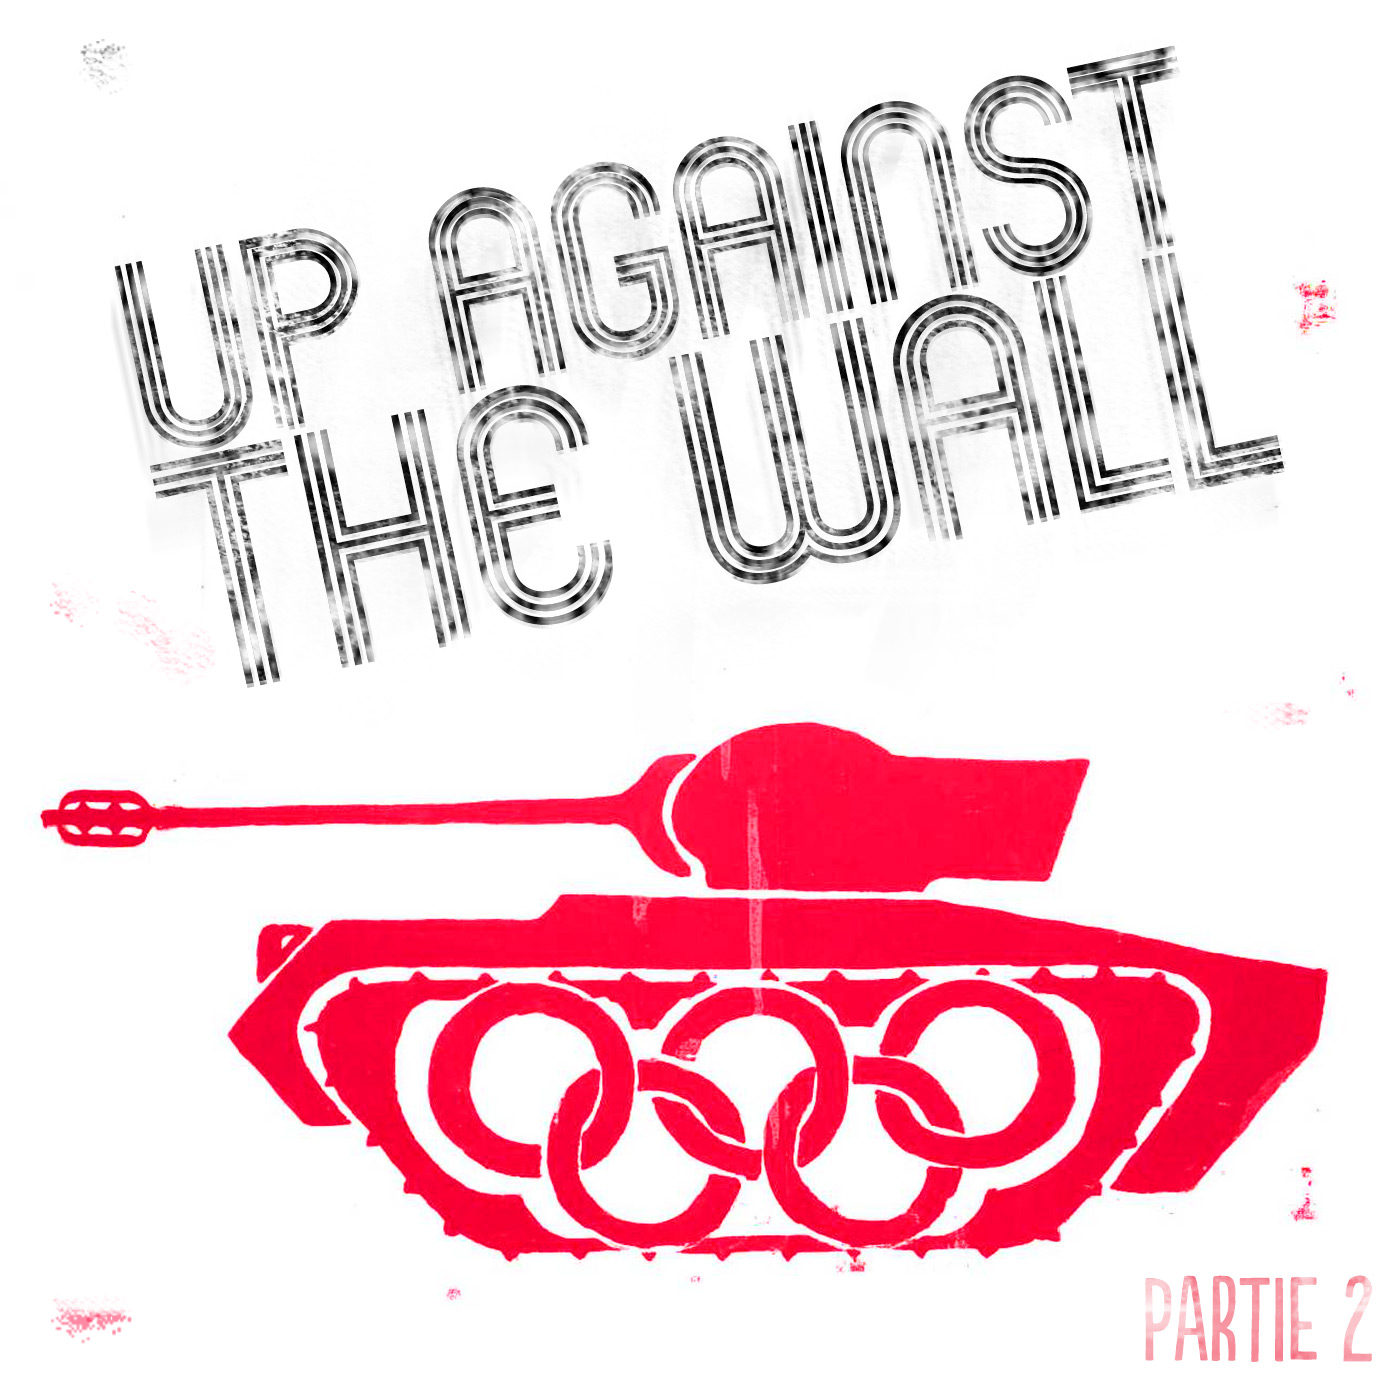 Up against the wall psych mix part 2 radio clash music for Pucker up patriots shirt